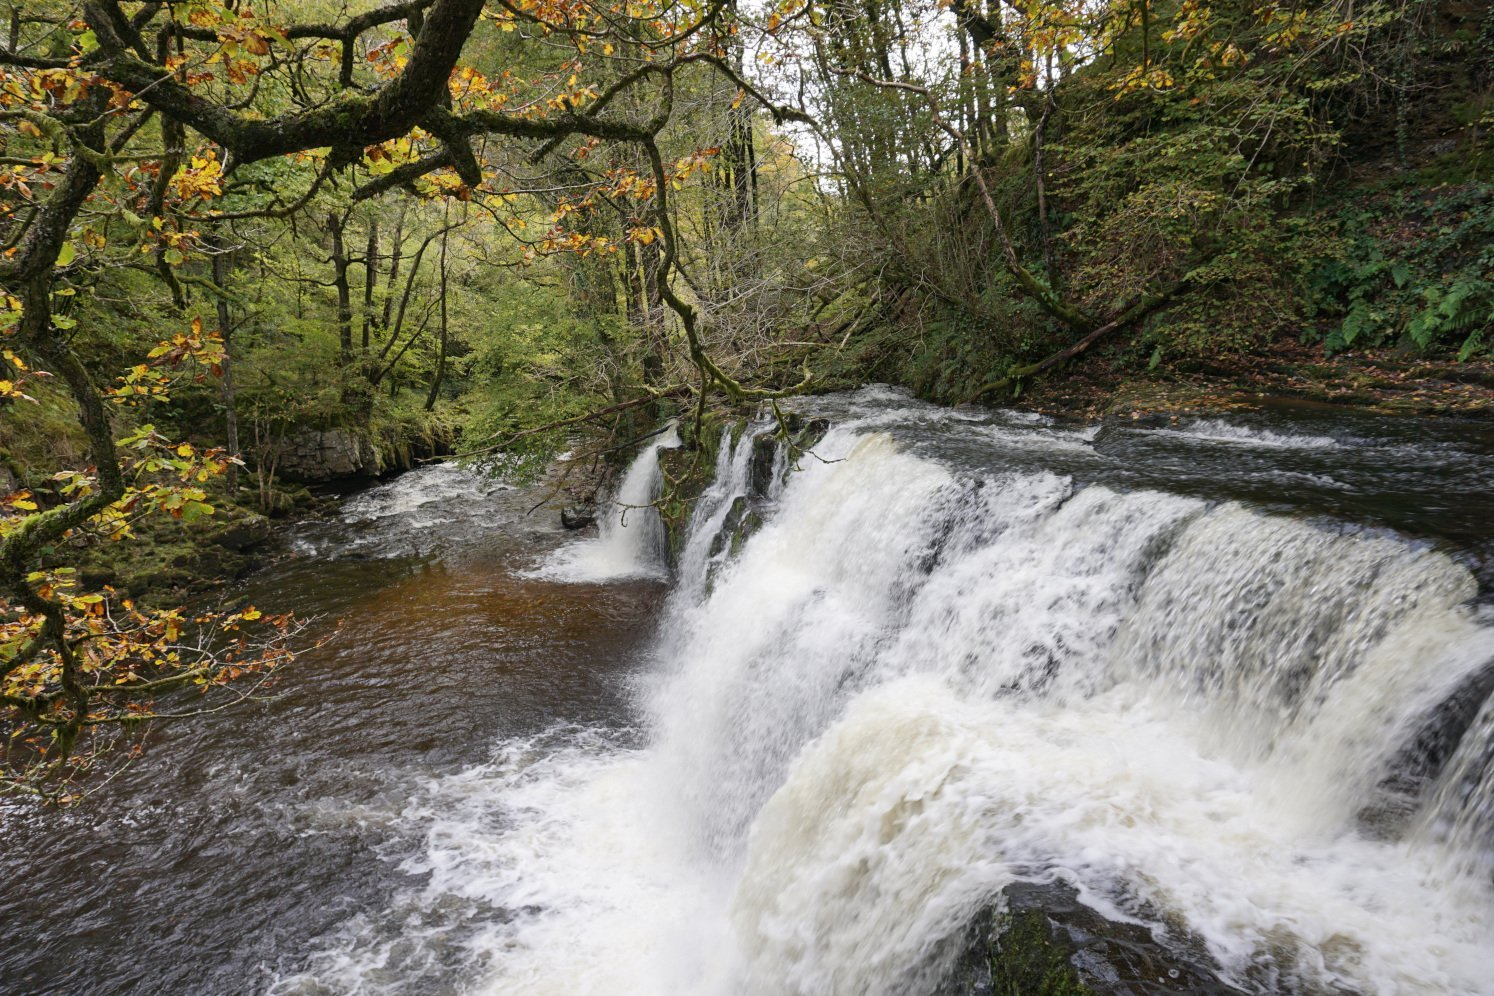 Sgwd Isaf Clun-Gwyn waterfall on the Four Waterfall Walk in the Brecon Beacons